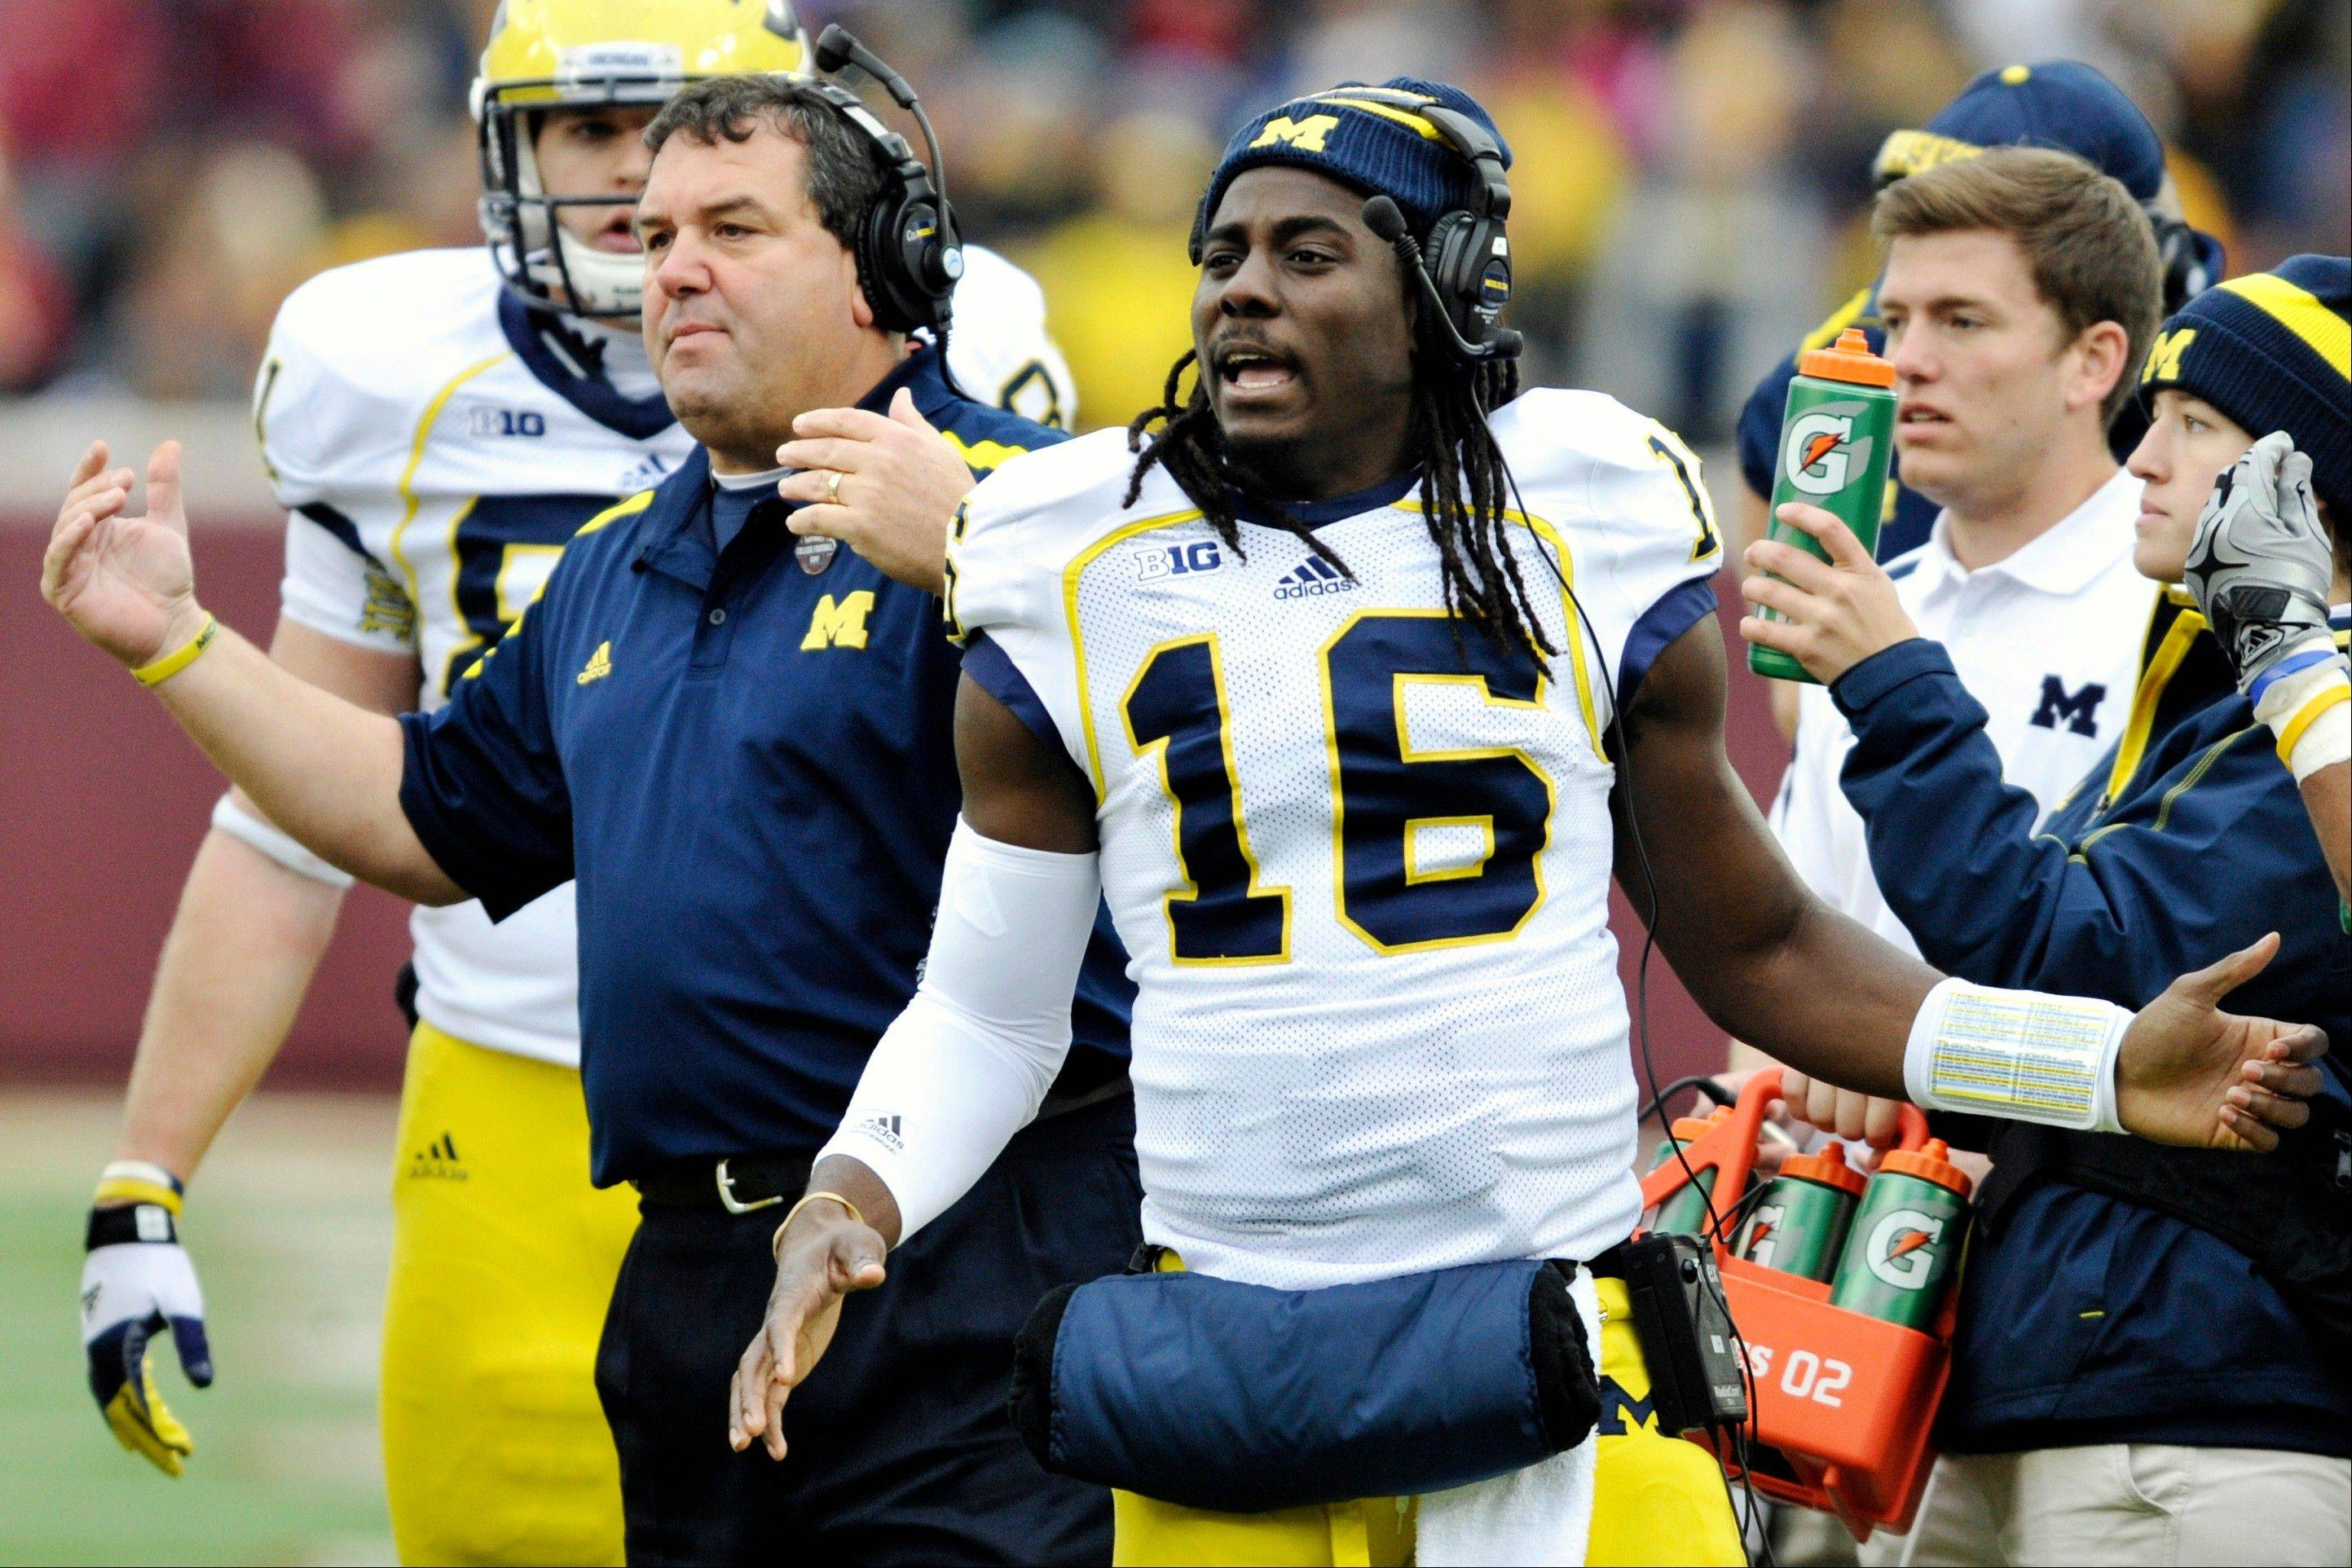 Michigan head coach Brady Hoke, left, and quarterback Denard Robinson, right, call over the offense Saturday during a timeout in the third quarter against Minnesota, Saturday, Nov. 3, 2012, in Minneapolis. Hoke says he's not giving daily updates on Denard Robinson. That leaves everyone — including Northwestern — waiting until Saturday to see if the quarterback is healthy enough to play.